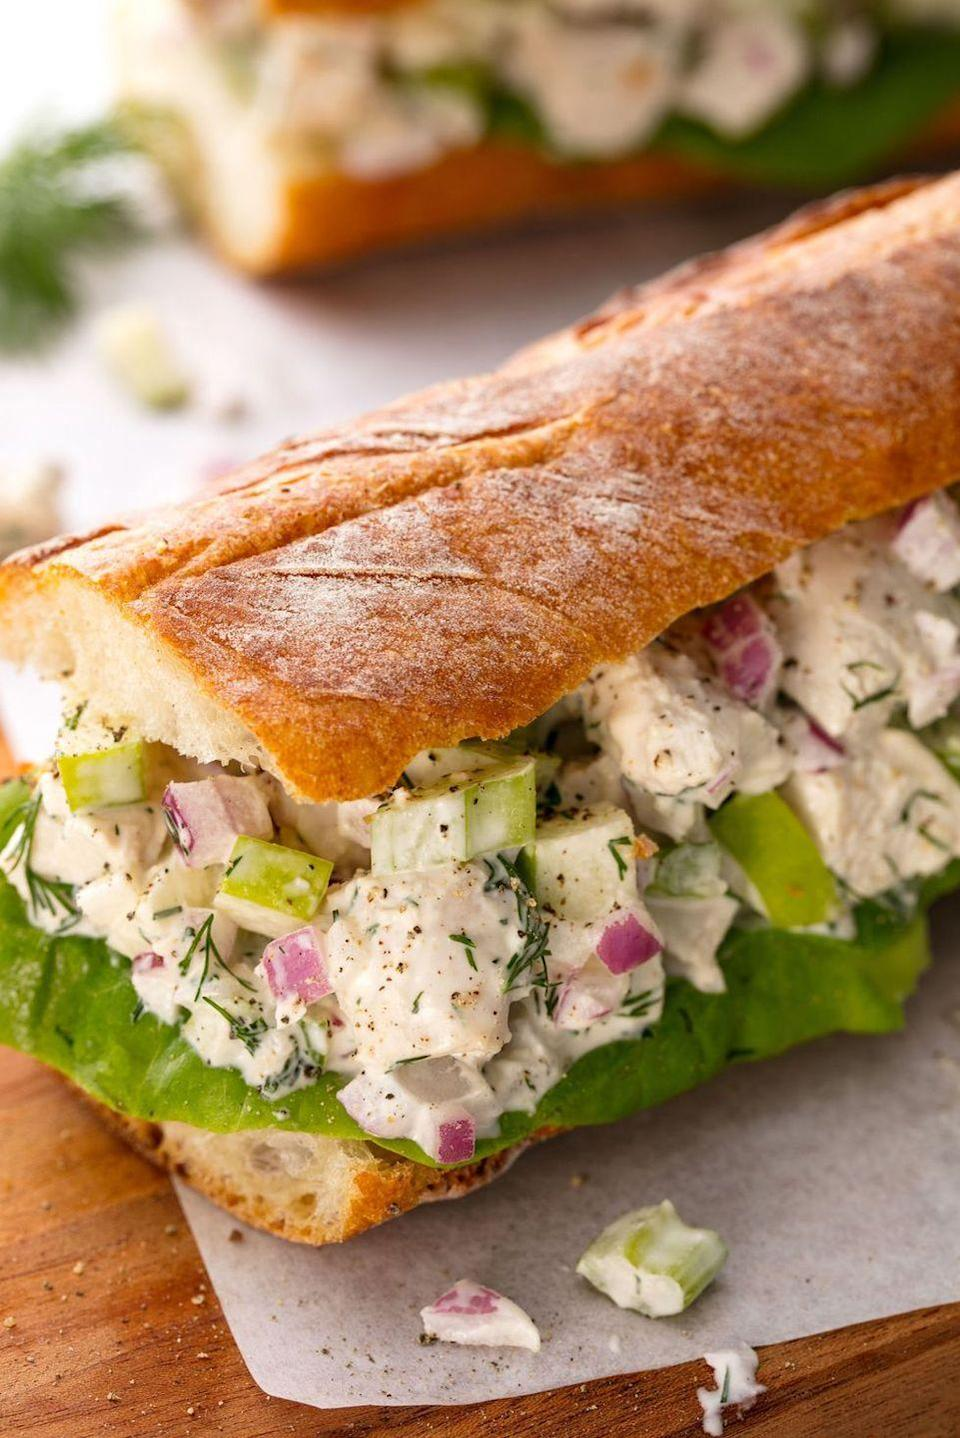 """<p>Just like Mama used to make.</p><p>Get the recipe from <a href=""""https://www.delish.com/cooking/recipe-ideas/recipes/a54787/best-chicken-salad-sandwich-recipe/"""" rel=""""nofollow noopener"""" target=""""_blank"""" data-ylk=""""slk:Delish"""" class=""""link rapid-noclick-resp"""">Delish</a>.</p>"""